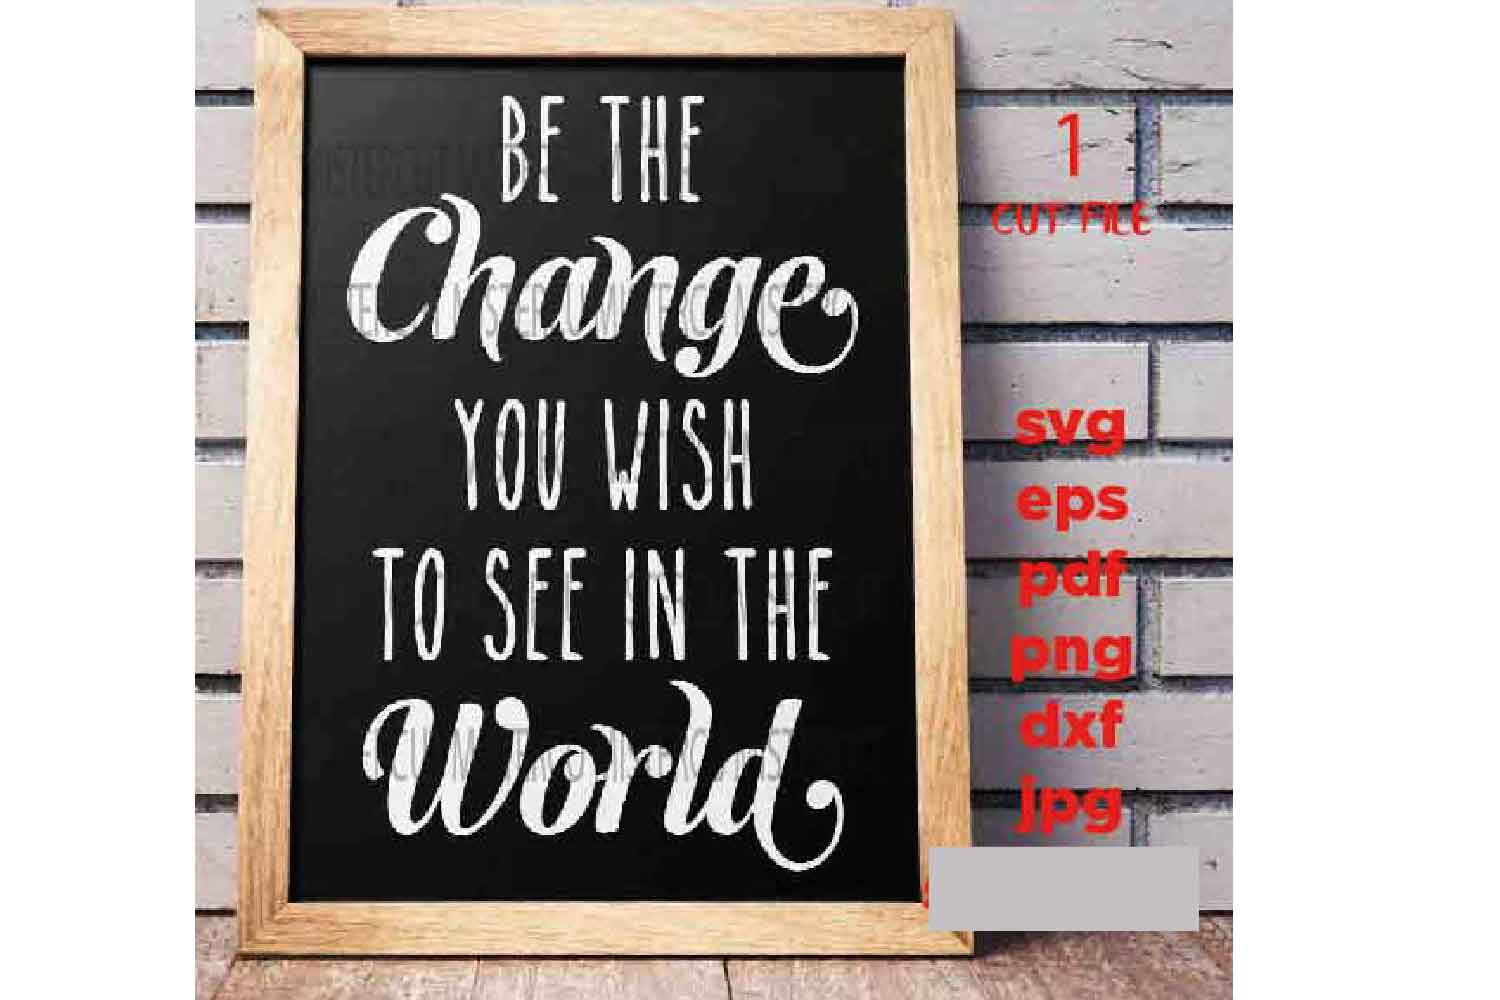 Be the Change you wish to see in the world svg, dxf, jpg mir example image 1